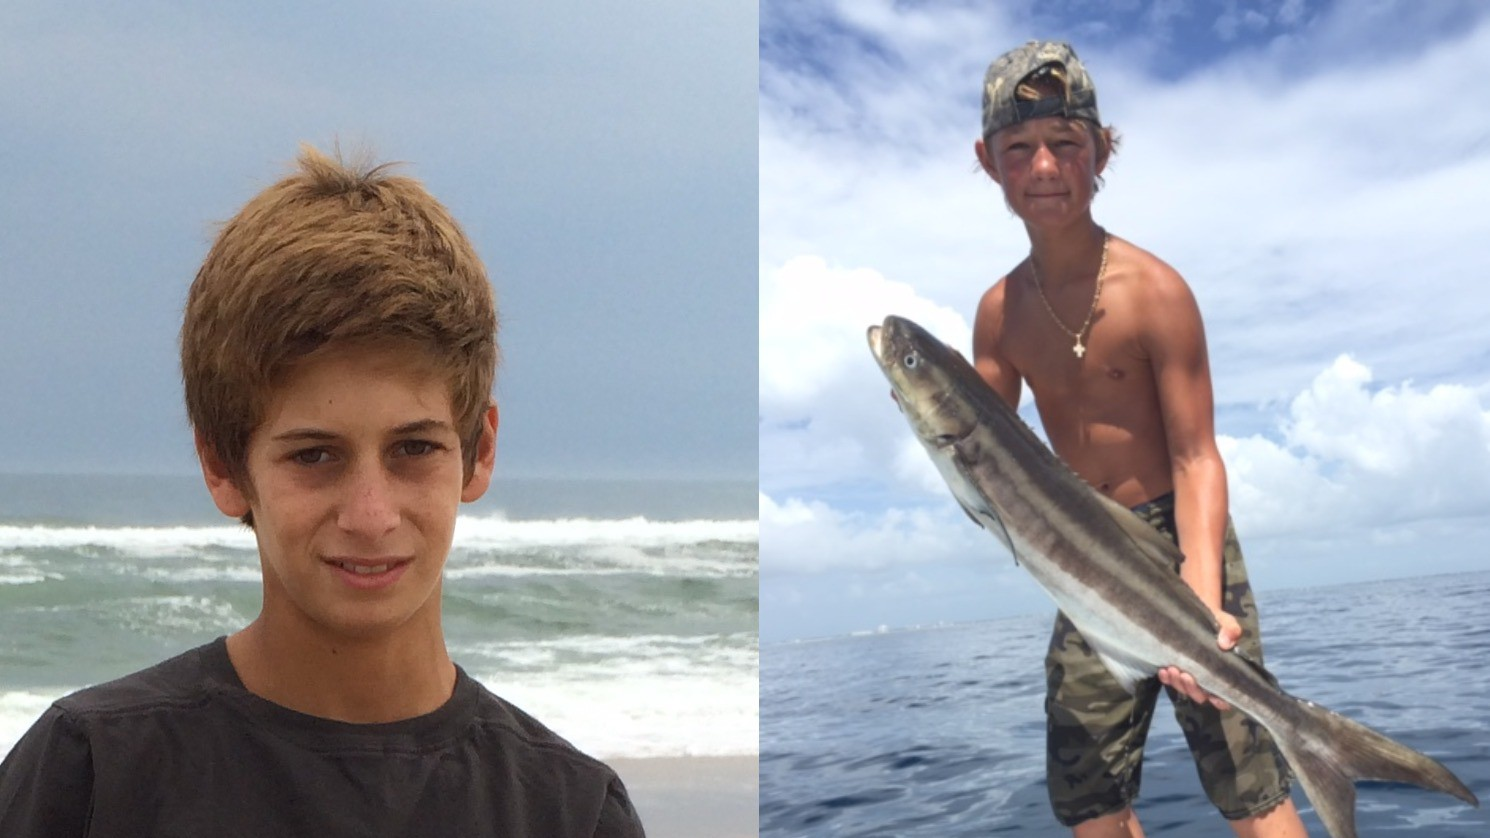 Coast Guard To Suspend Search for Teens Lost at Sea